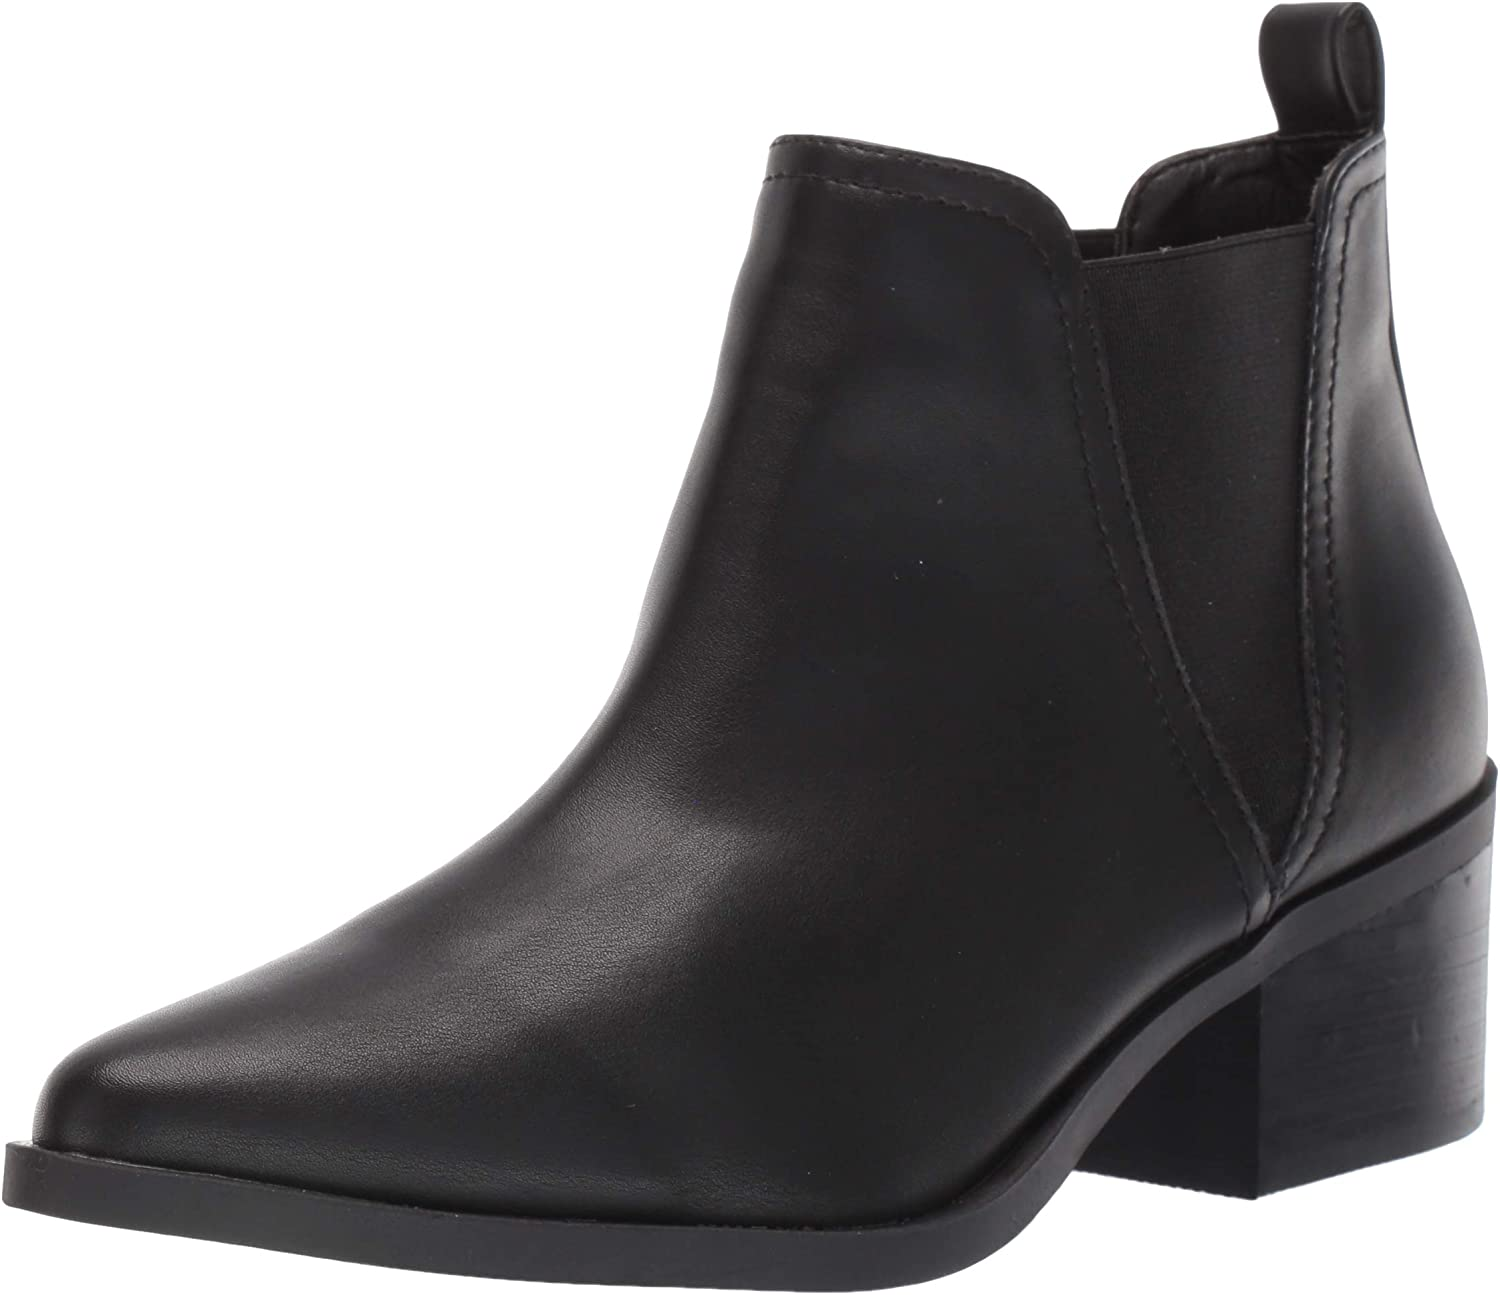 2021new shipping free shipping 70% OFF Outlet Report Women's Zarissa Boot Ankle